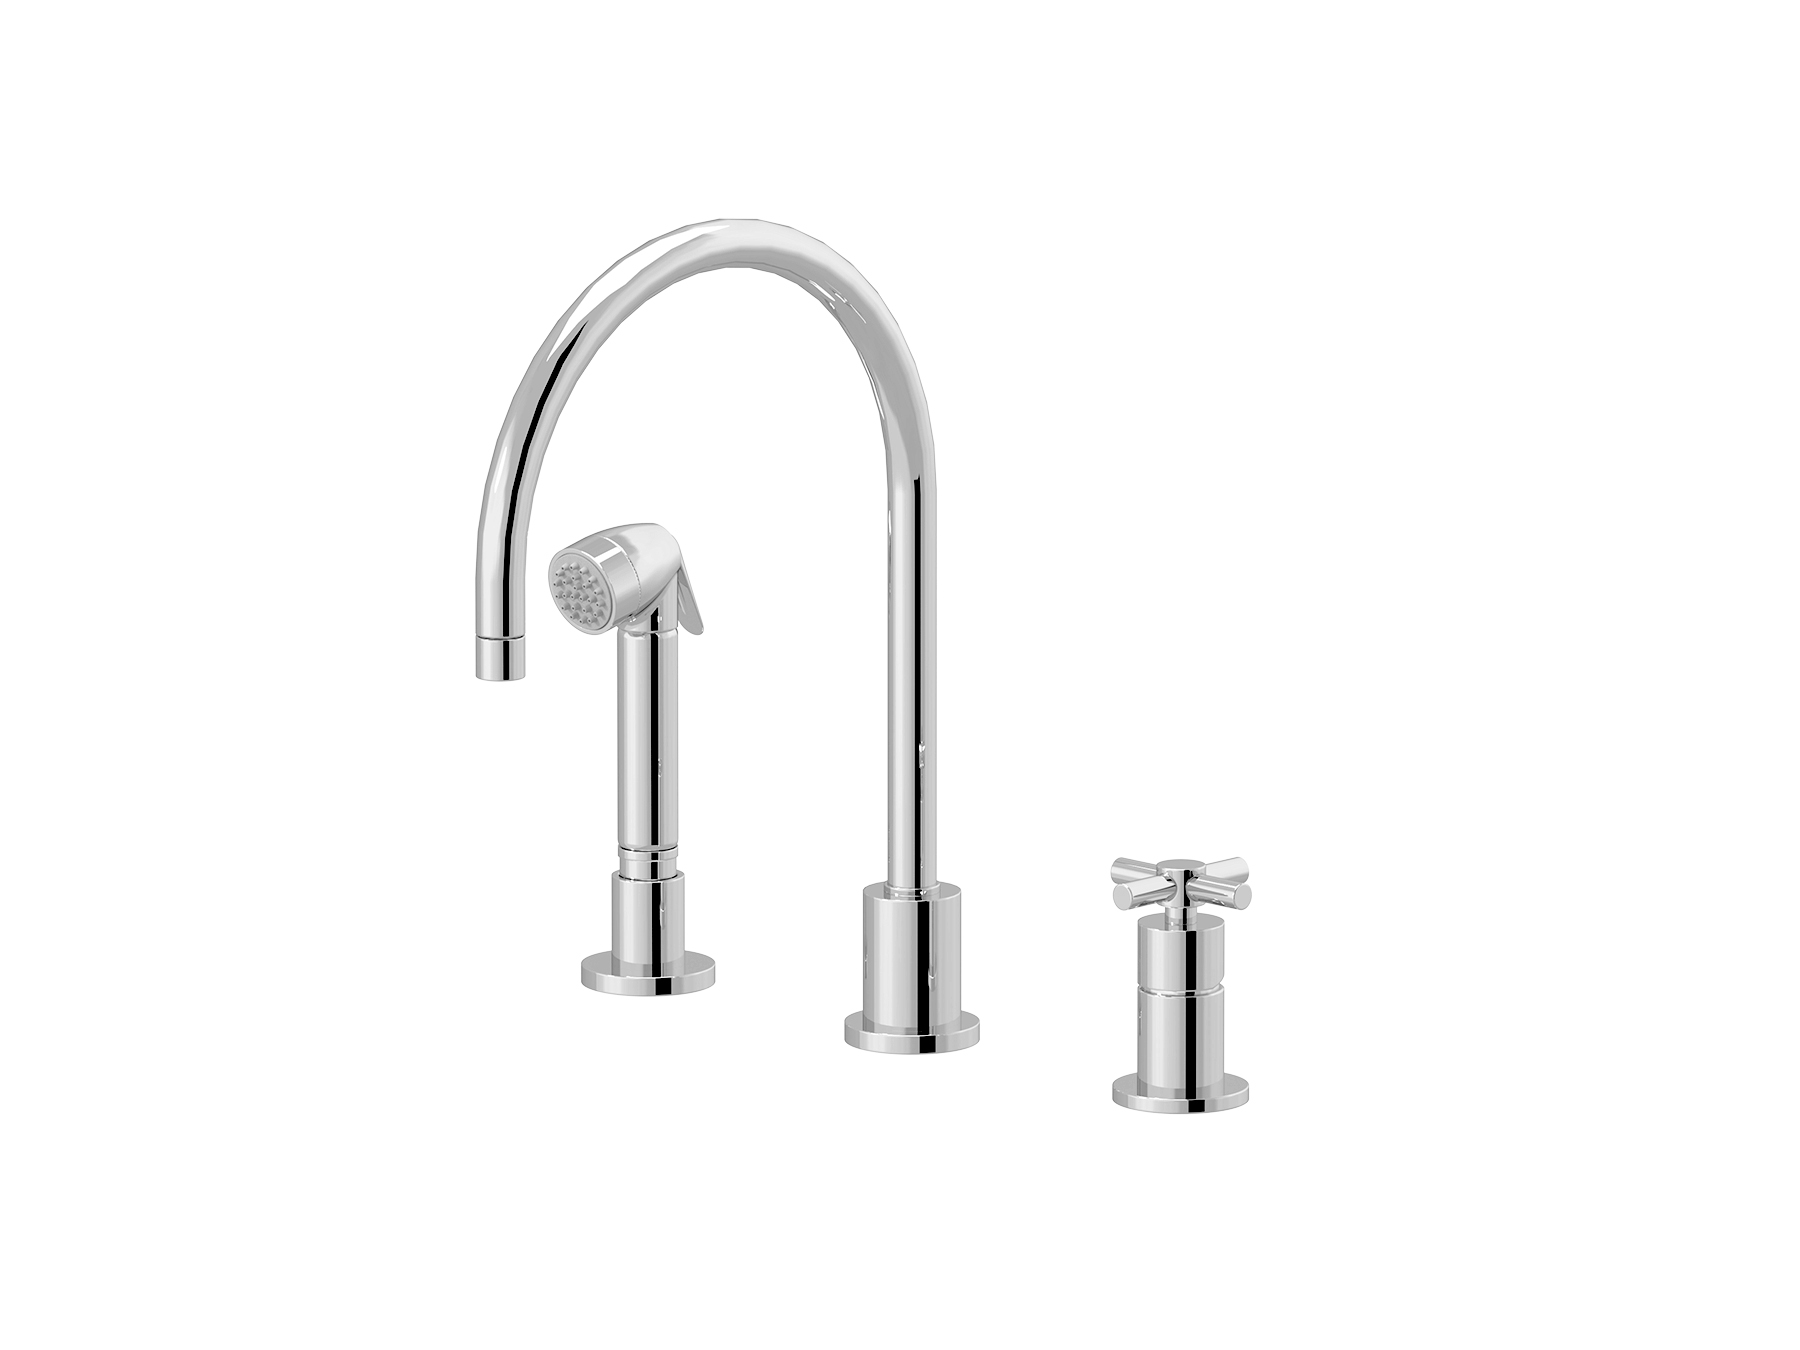 Single-lever kitchen mixer, great spout, handshowe 4532.--.28